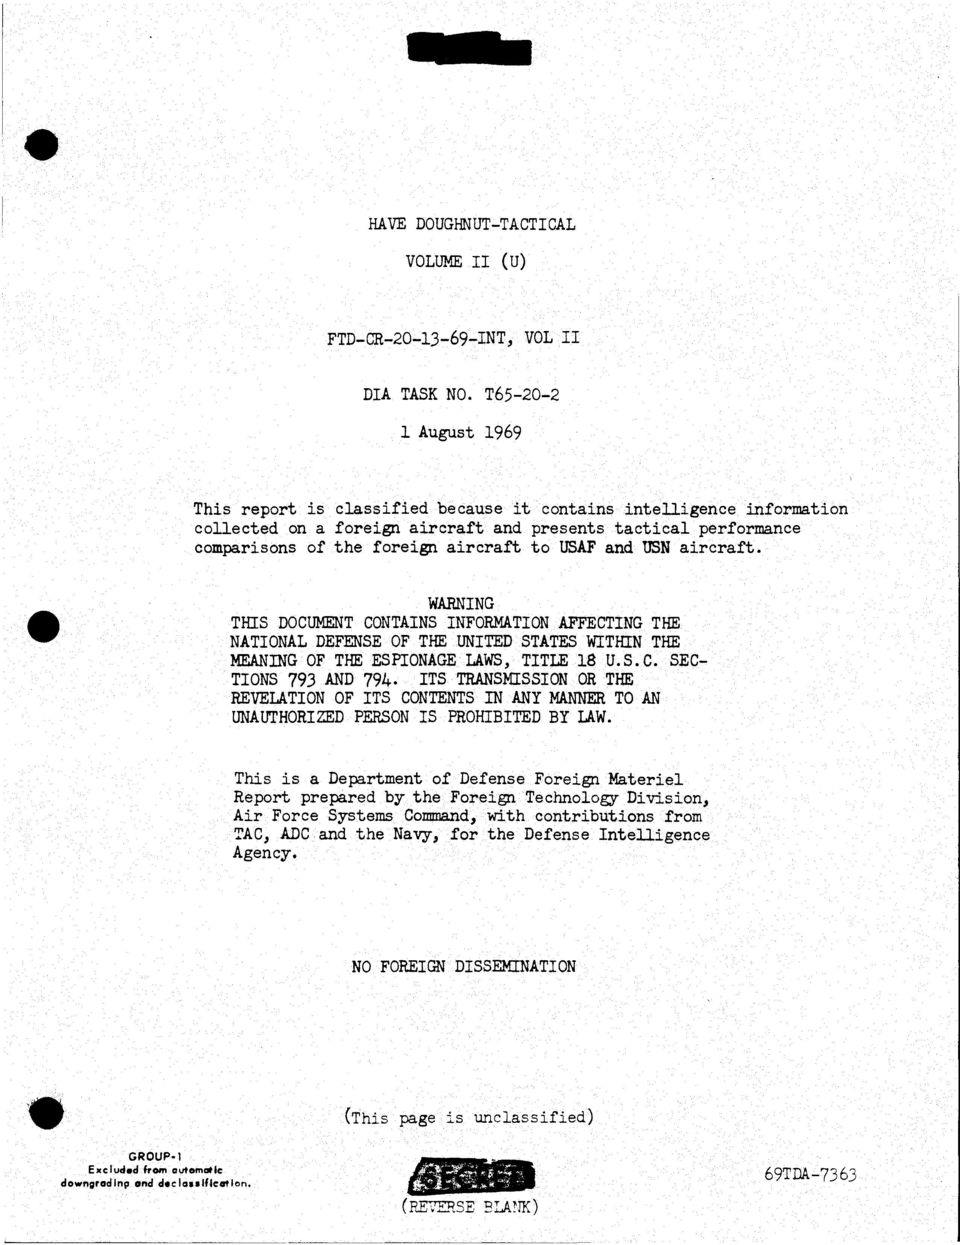 USAF and USN aircraft. WARNING THIS DOCUMENT CONTAINS INFORMATION AFFECTING THE NATIONAL DEFENSE OF THE UNITED STATES WITHIN THE MEANING OF THE ESPIONAGE LAWS, TITLE 18 U.S.C. SEC TIONS 793 AND 794.